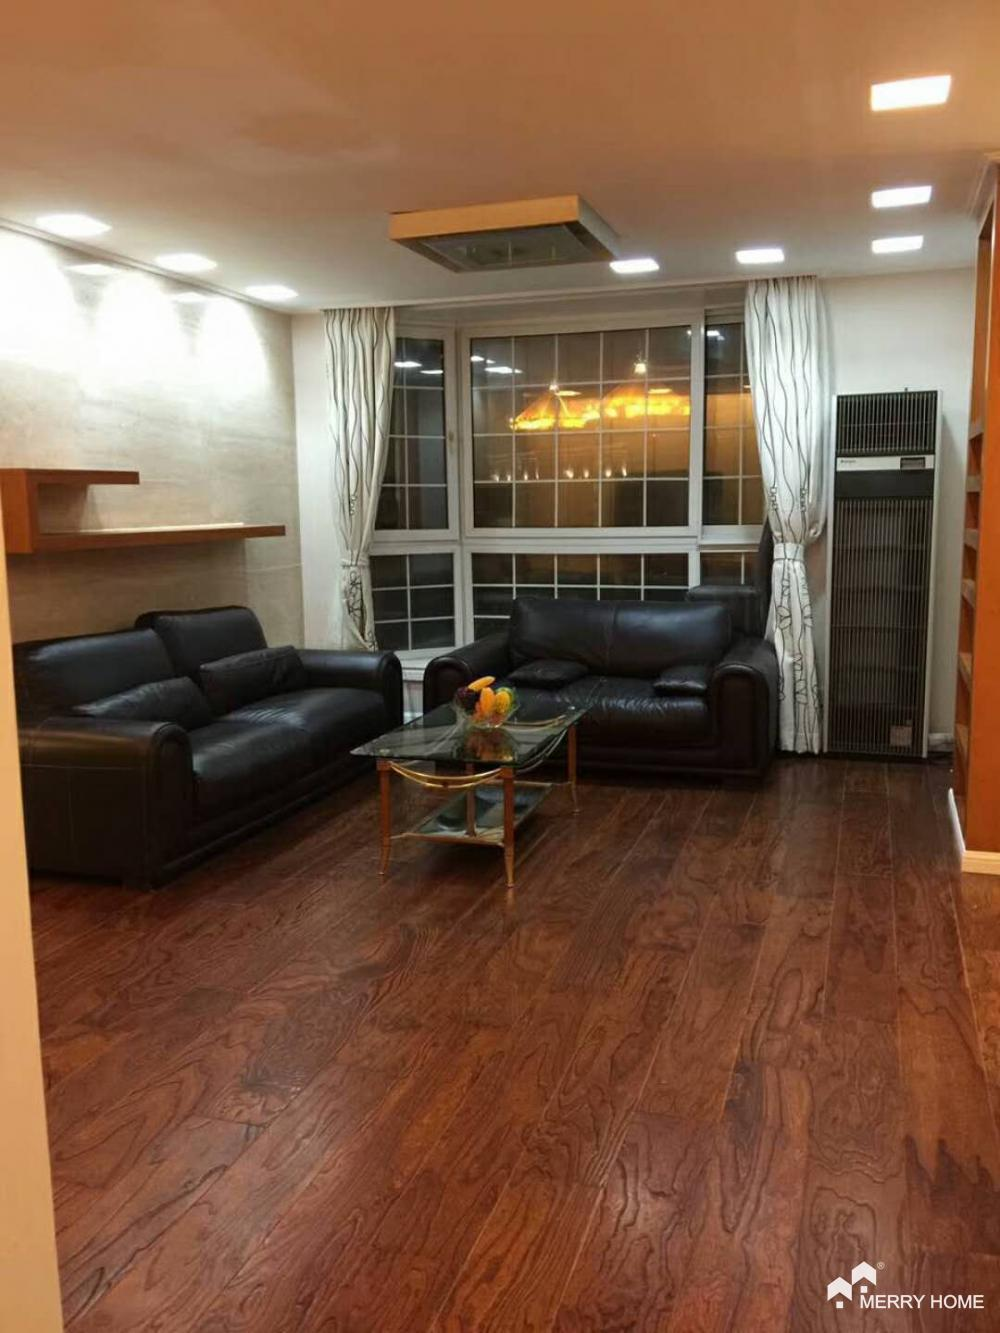 Gubei Up Town Spacious 4 Bedroom Apt For Rent Apartment In Gubei Shanghai Merry Home